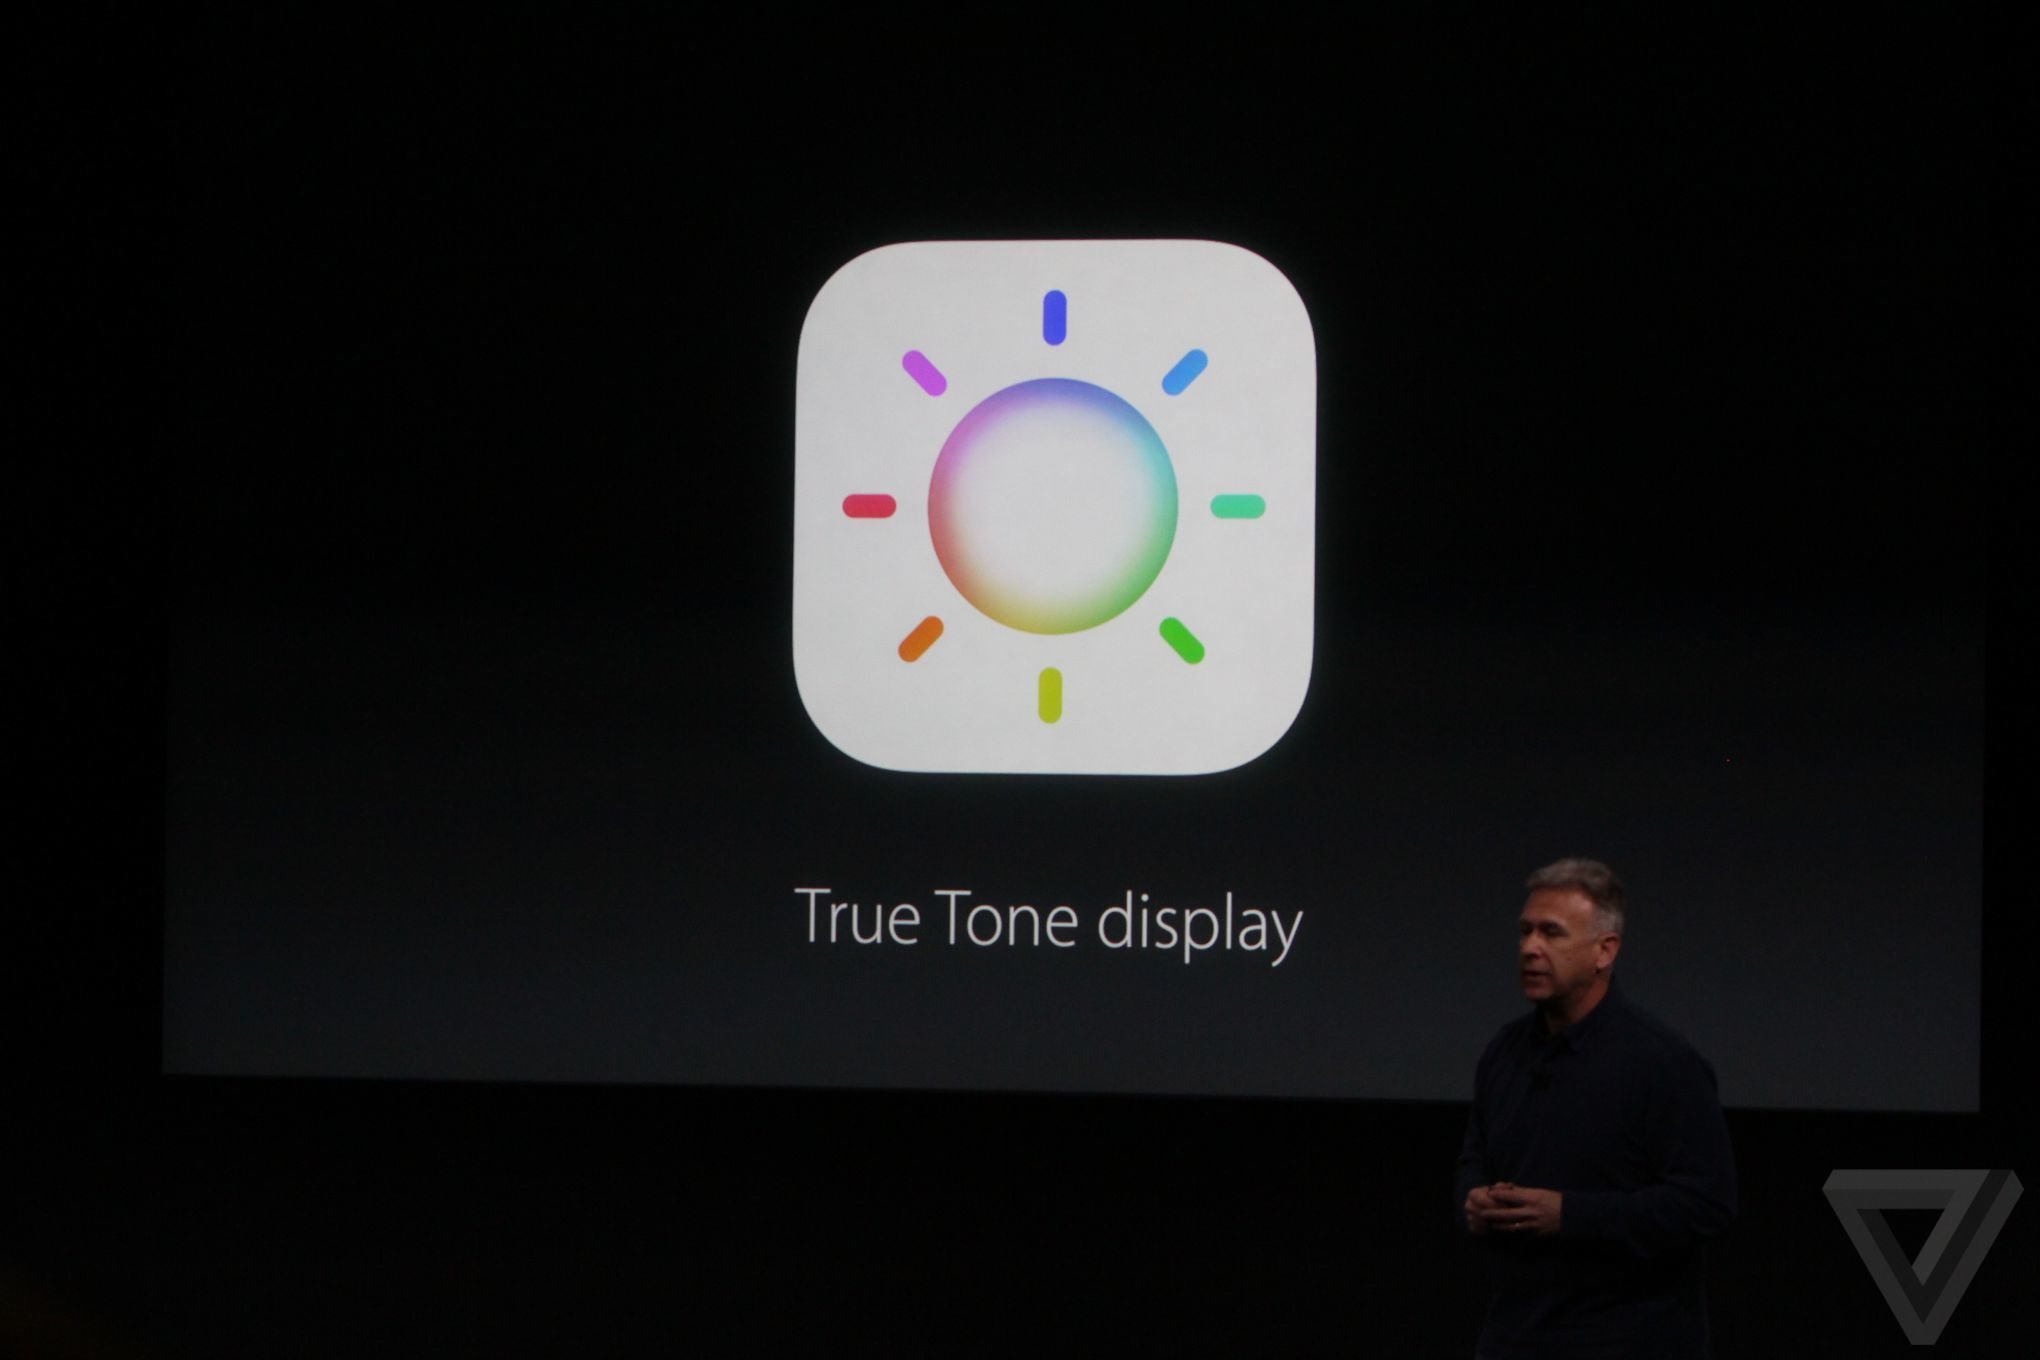 https://syllabus.vox-cdn.com/uploads/photo/image/22755/apple-iphone-se-ipad-pro-event-verge-436.jpg